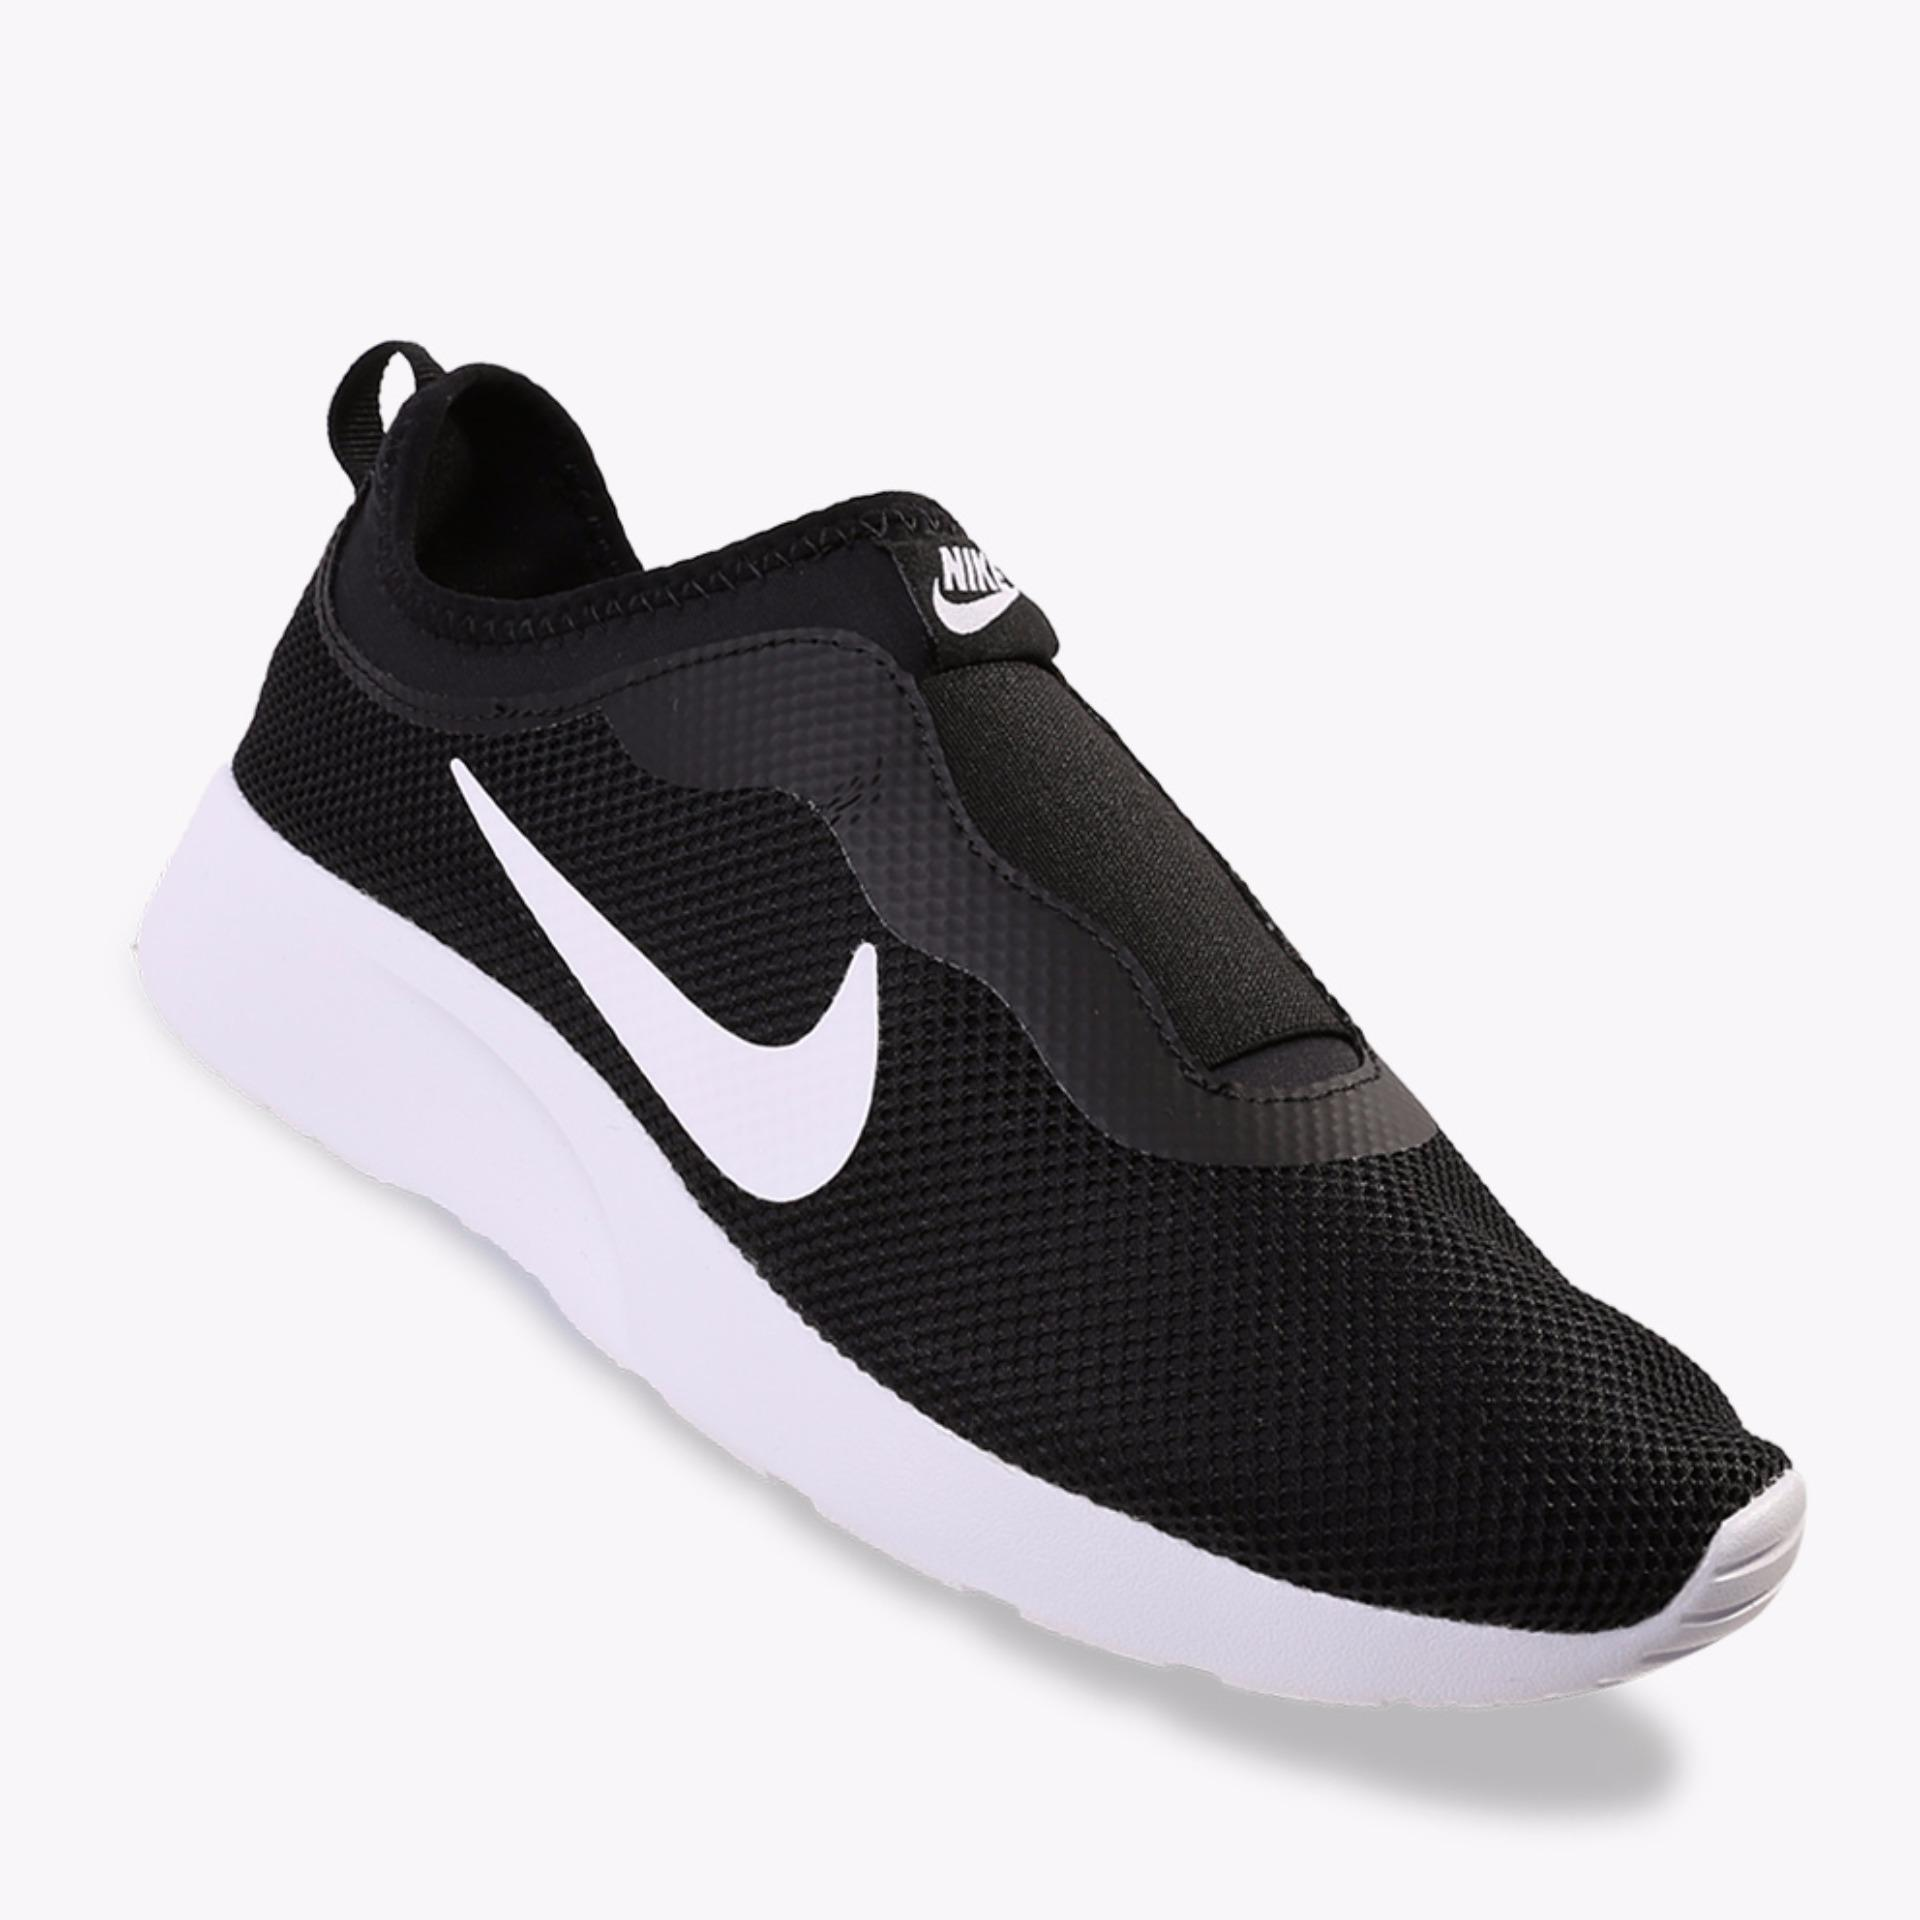 Beli Nike Tanjun Slip On Women S Sneakers Shoes Hitam Nike